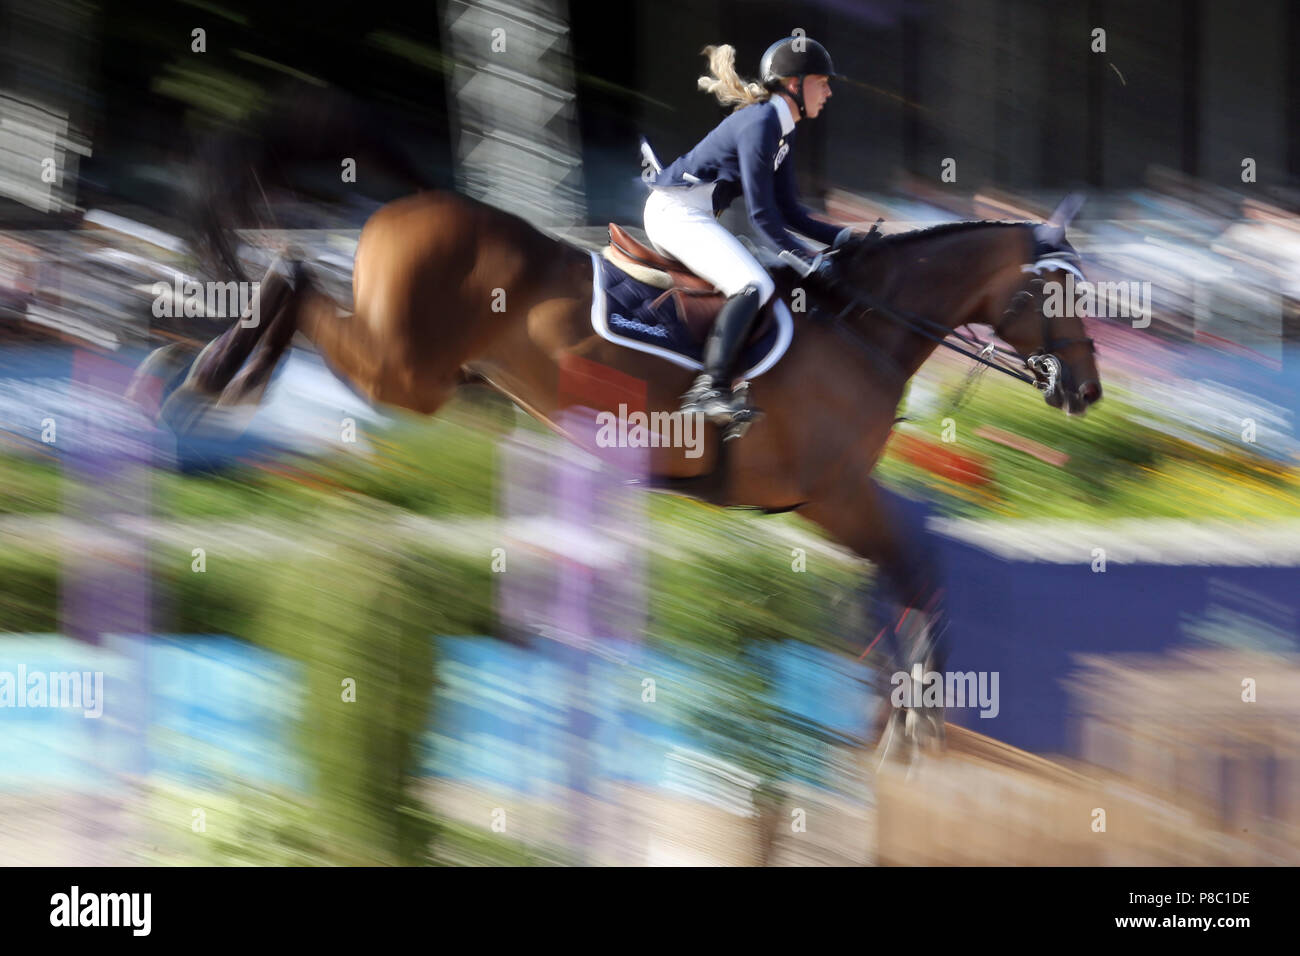 Berlin, dynamics, jumping horse and rider over an oxer. Silverstone G under Laura Klaphake (GER) - Stock Image